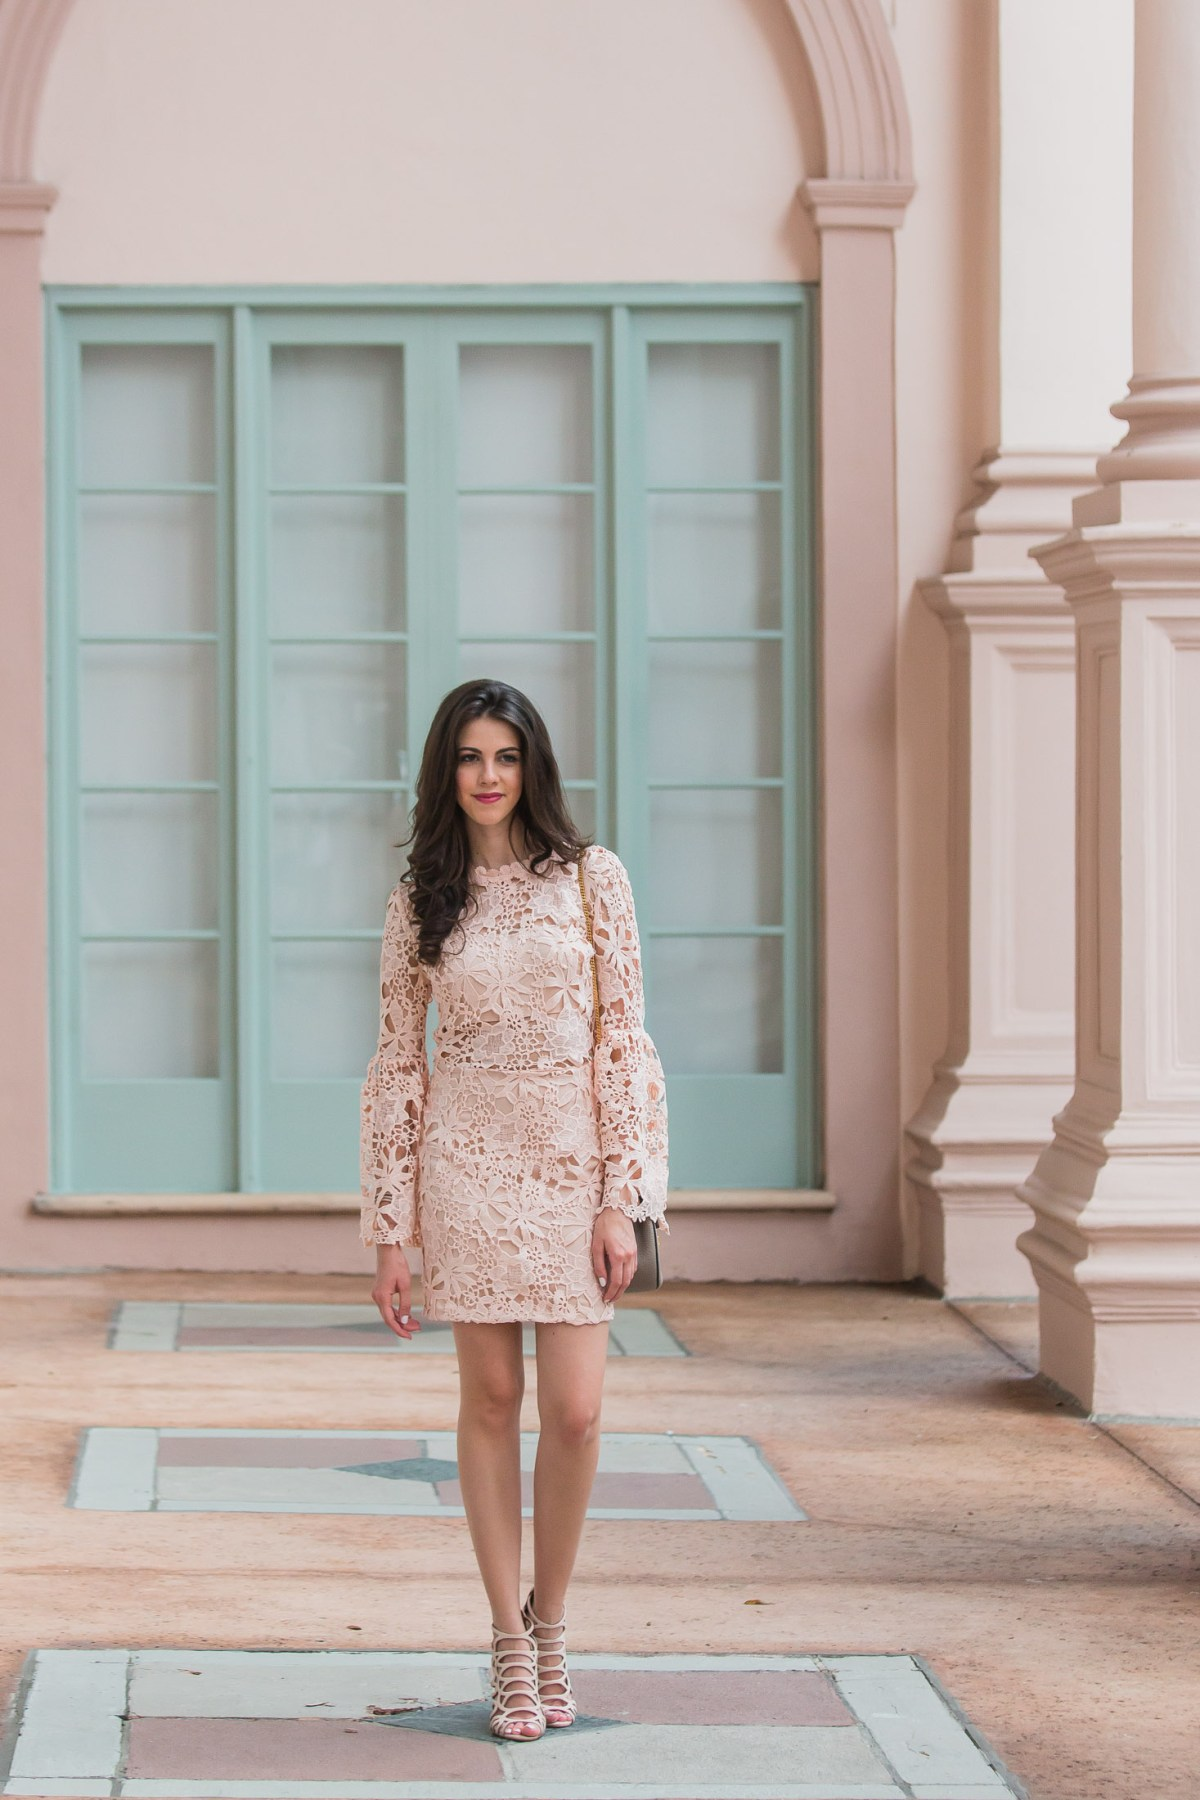 Dash of Panache styling a Blush WILLAMETTE LACE DRESS